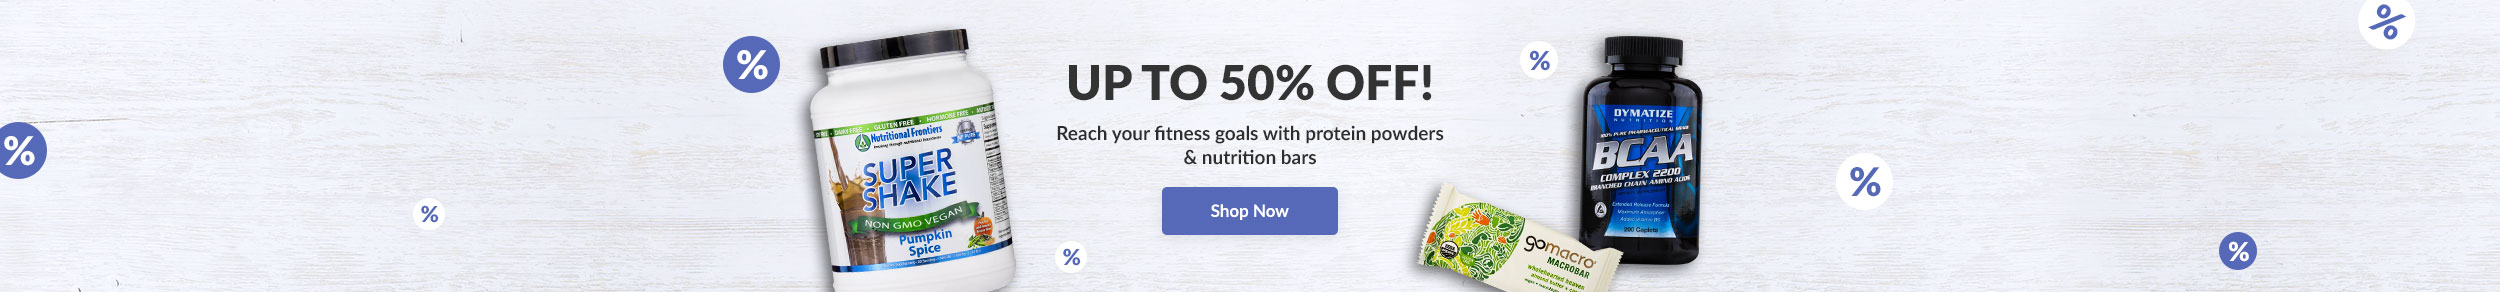 https://i3.pureformulas.net/images/static/Fitness_On_Sale_Items_Store-Slide_121018.jpg